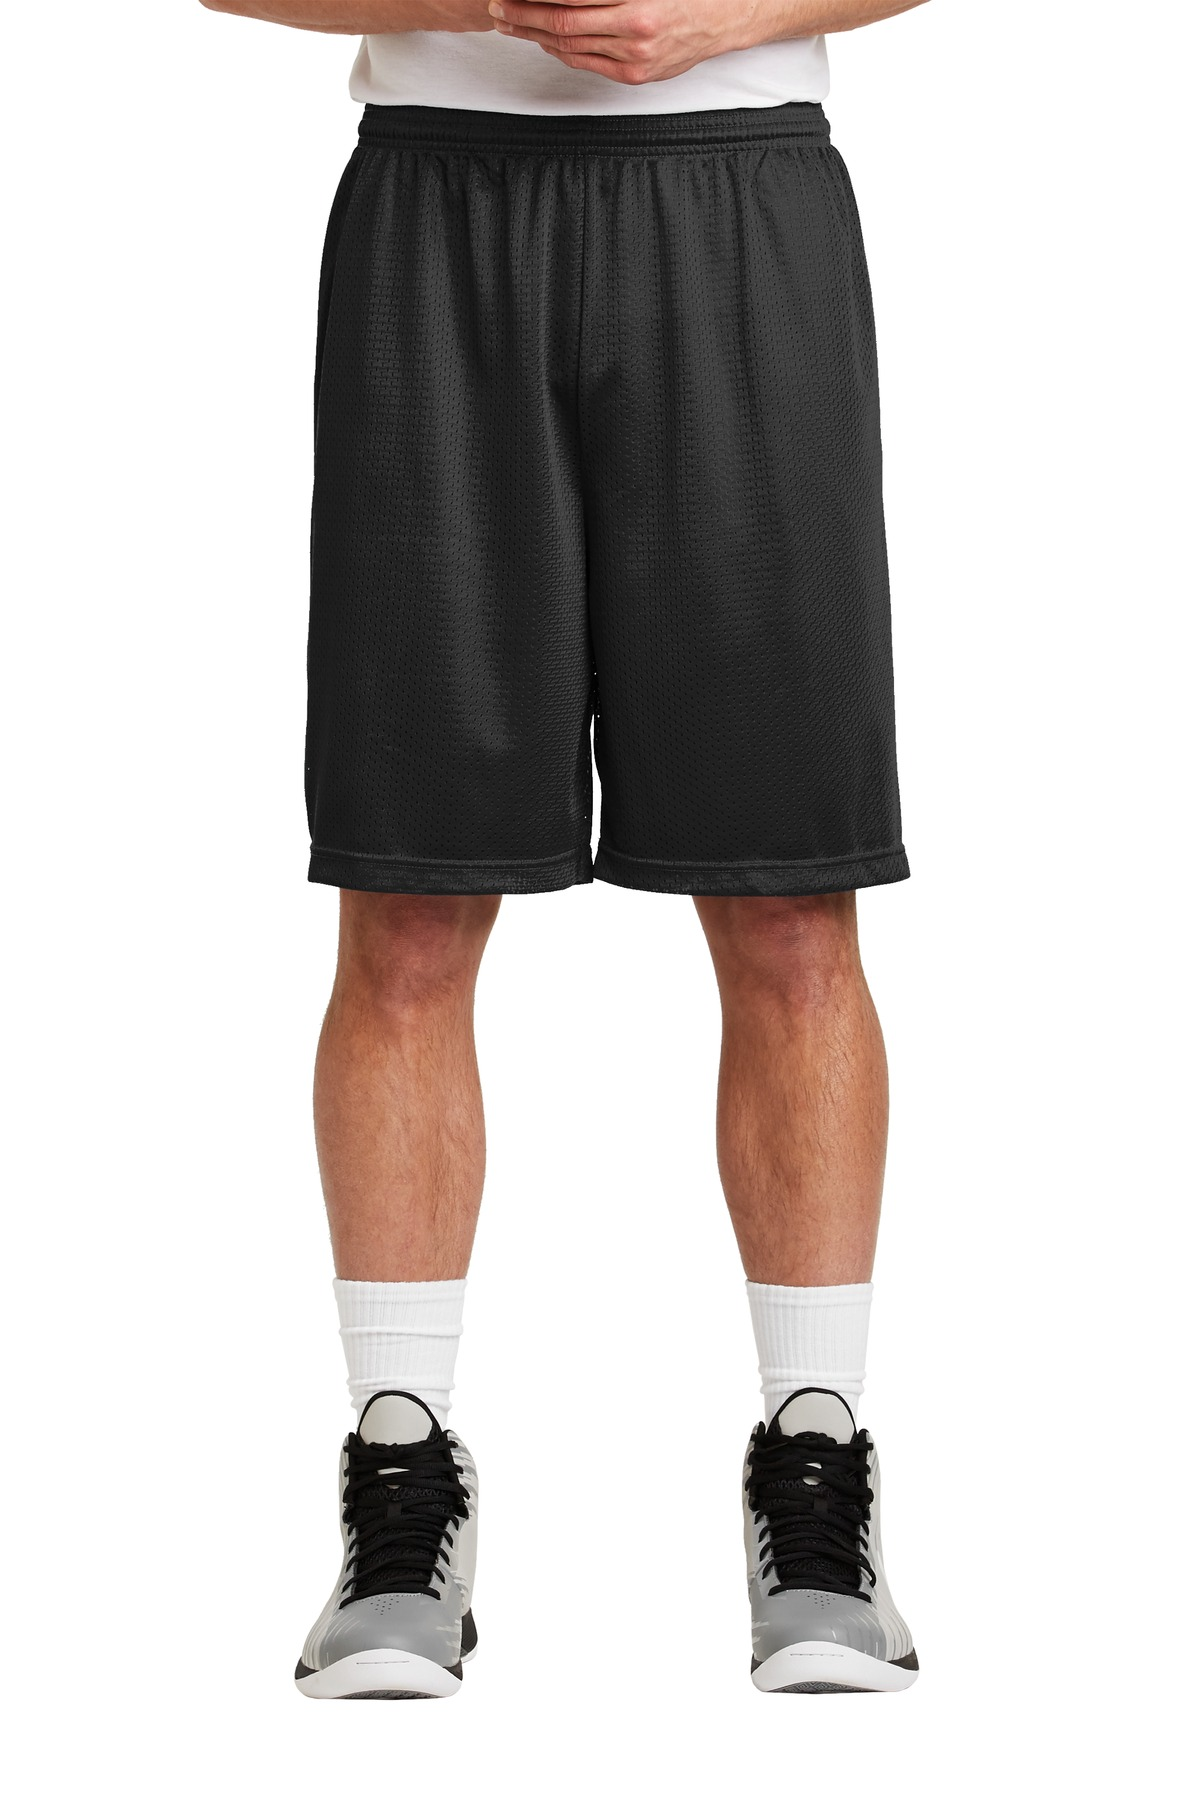 Sport-Tek ®  Long PosiCharge ®  Classic Mesh Short. ST515 - Black